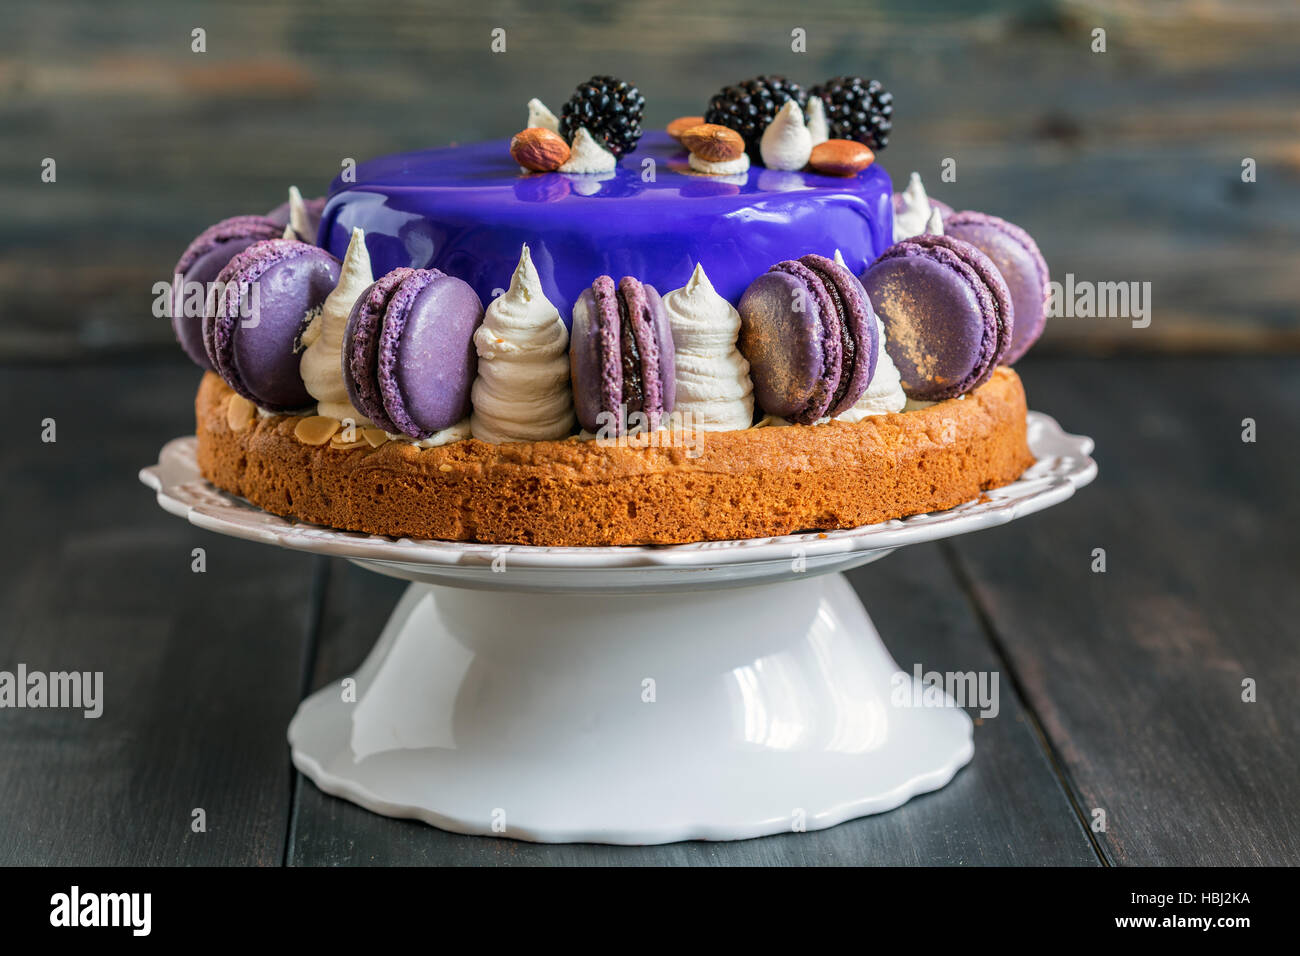 Mousse cake with a smooth colored glaze. - Stock Image